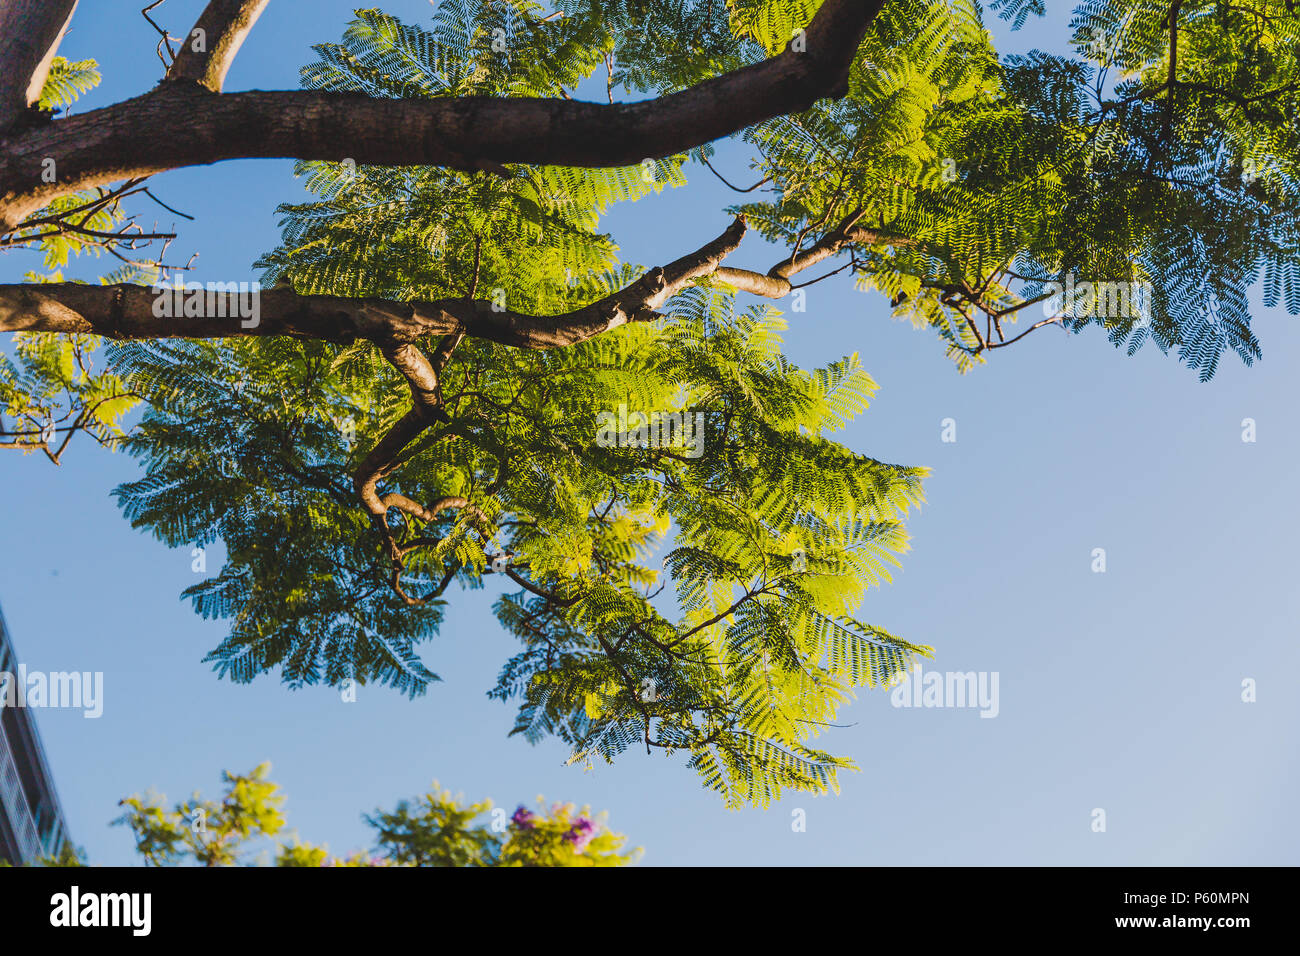 Jacaranda Tree Branches With Green Leaves Shot From Below And Blue Sky Stock Photo Alamy